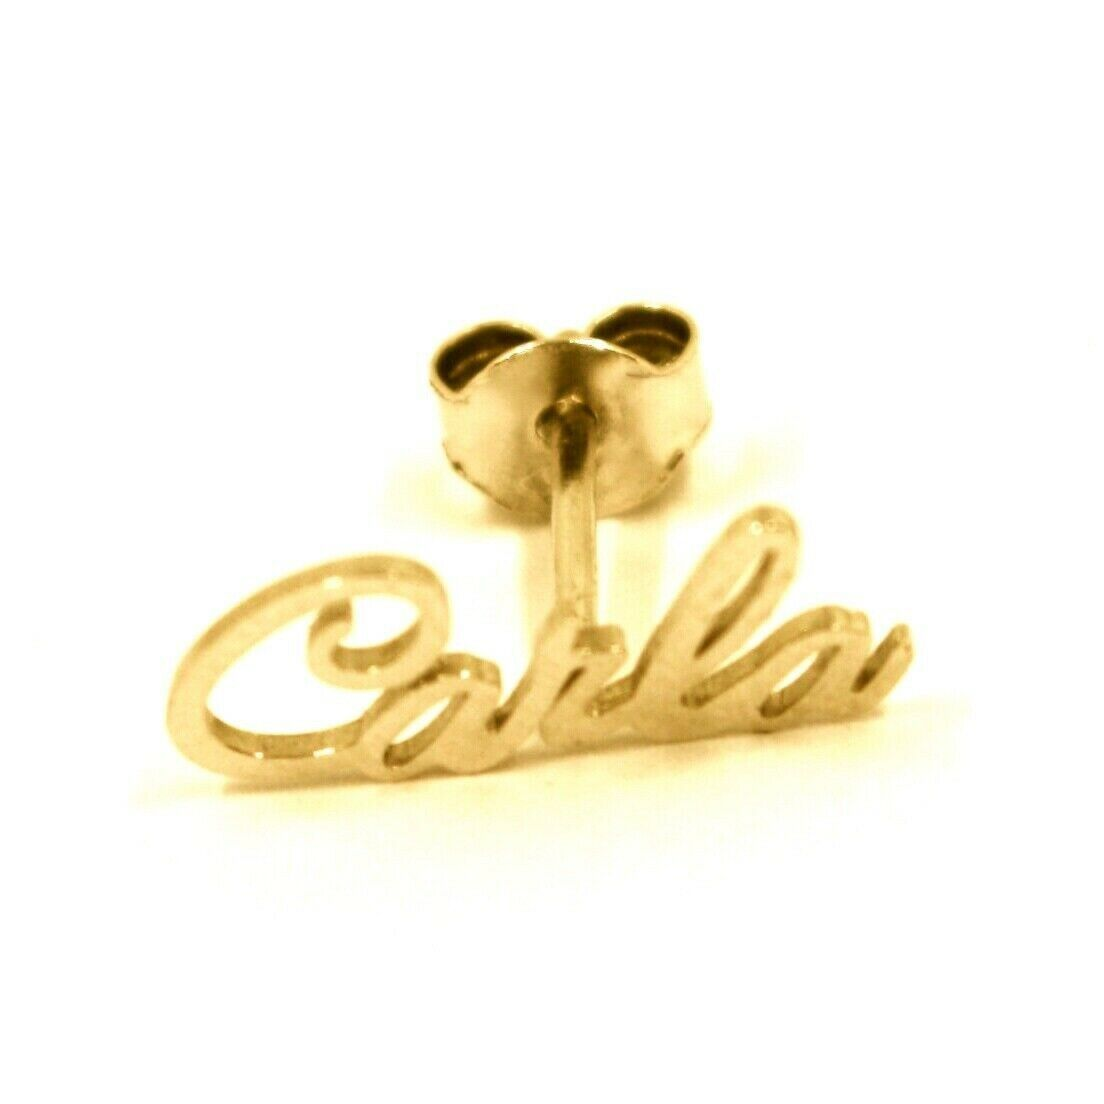 925 STERLING SILVER YELLOW EARRINGS, WRITTEN NAME CARLA, MADE IN ITALY